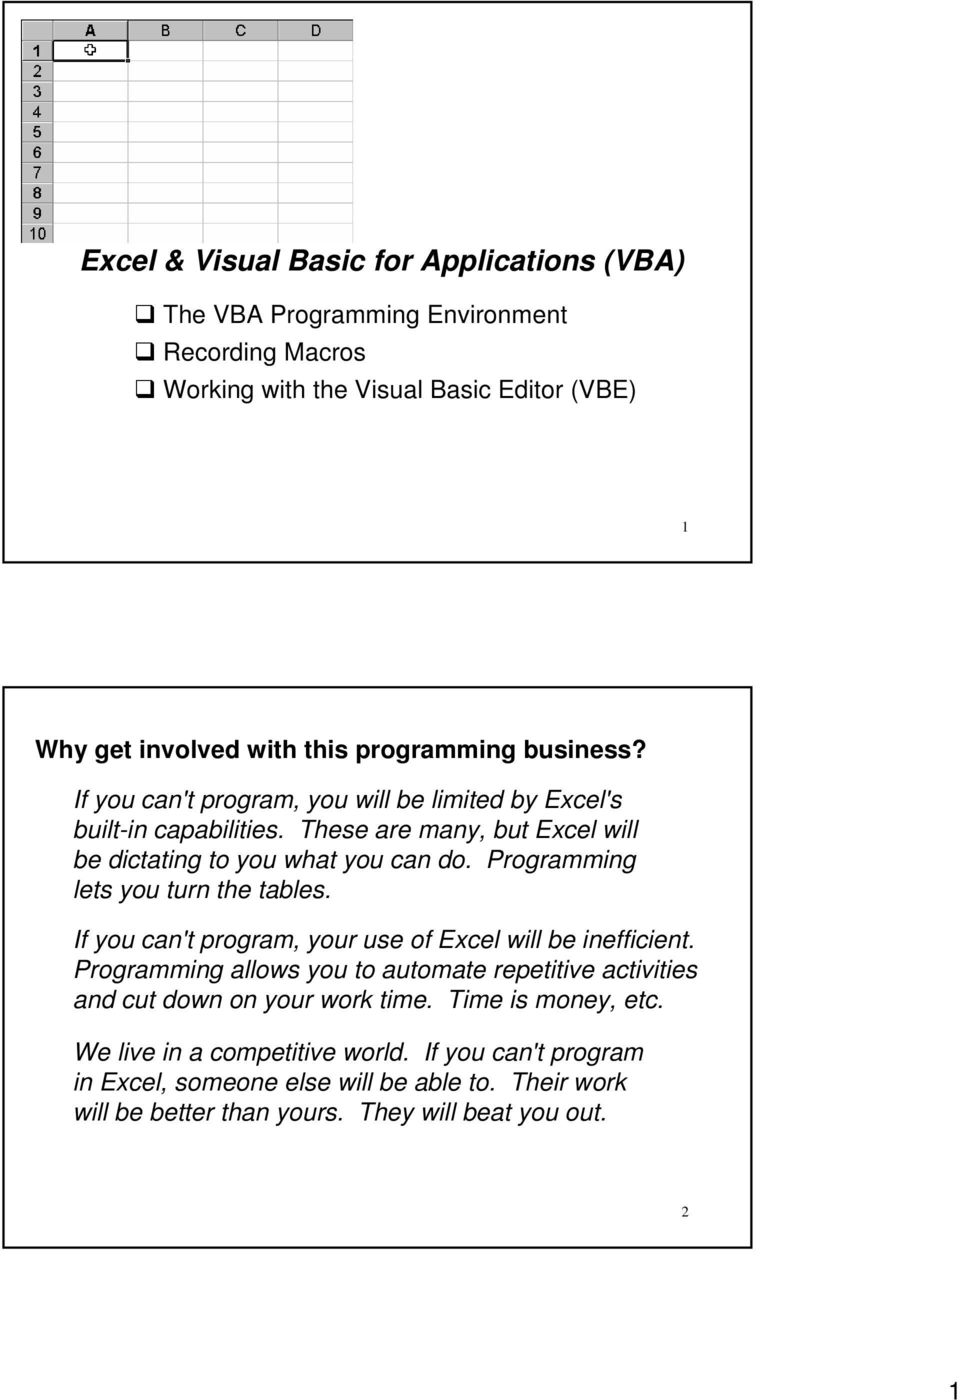 Excel & Visual Basic for Applications (VBA) - PDF